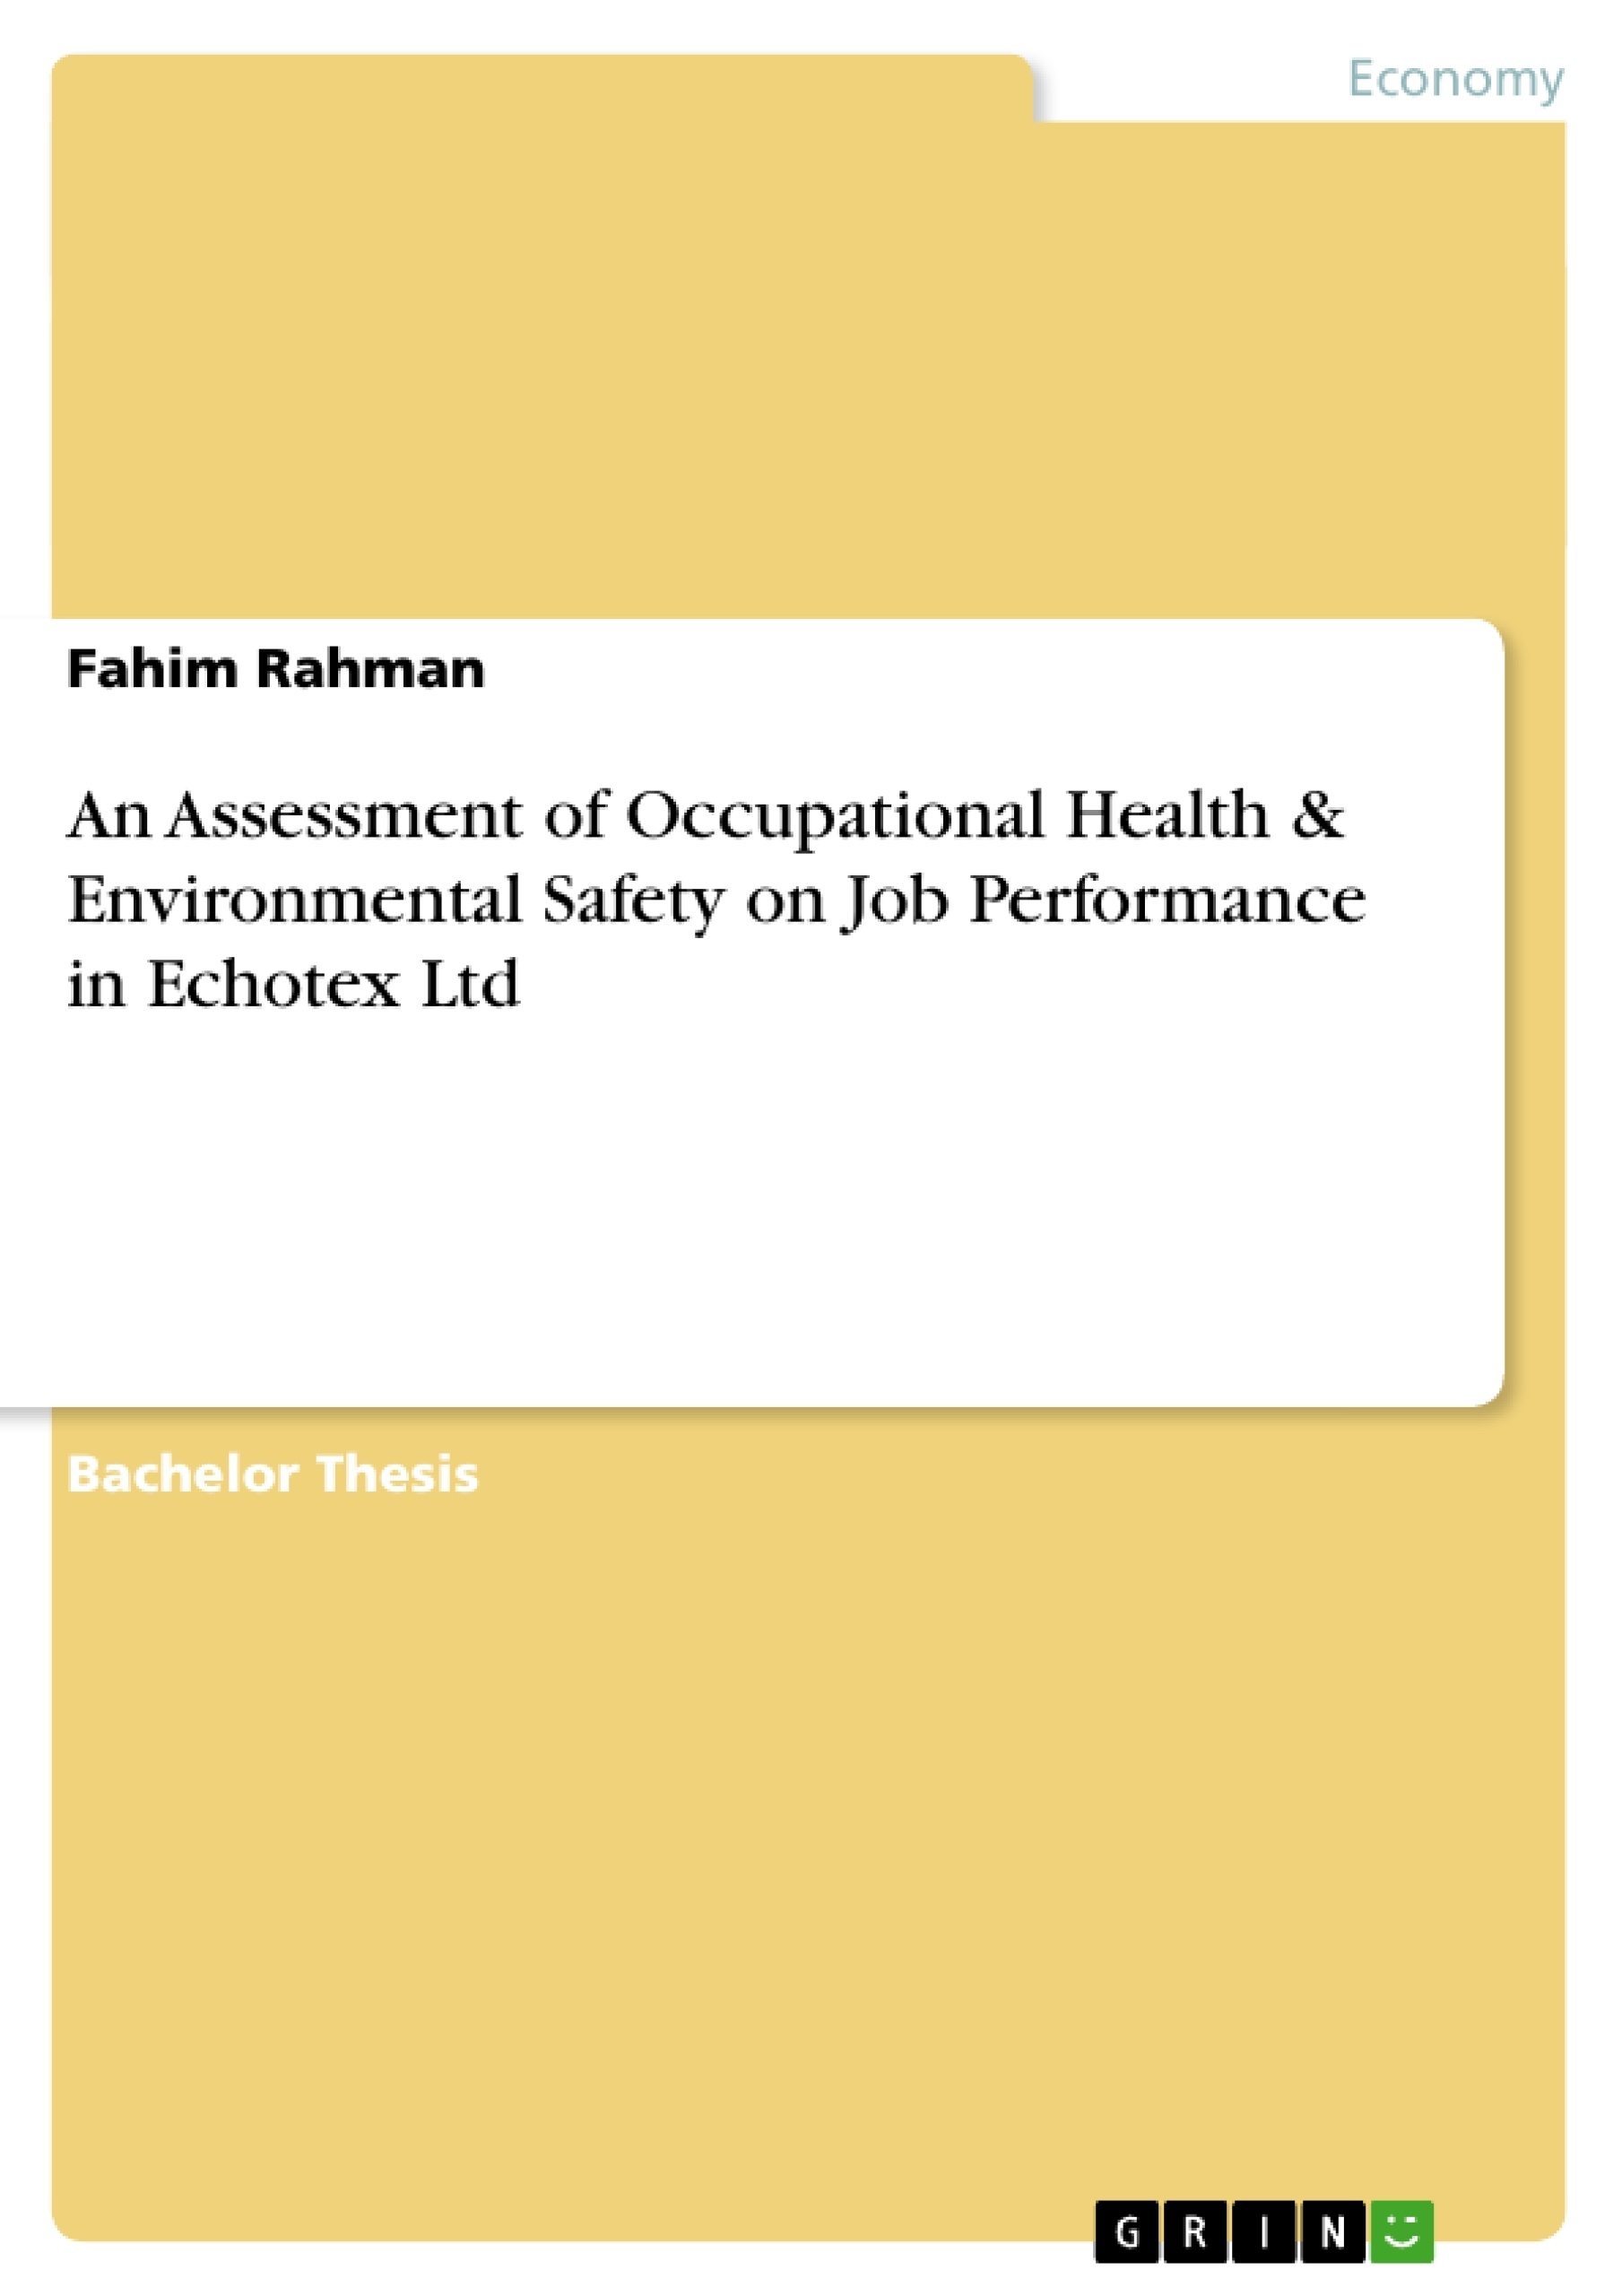 Title: An Assessment of Occupational Health & Environmental Safety on Job Performance in Echotex Ltd